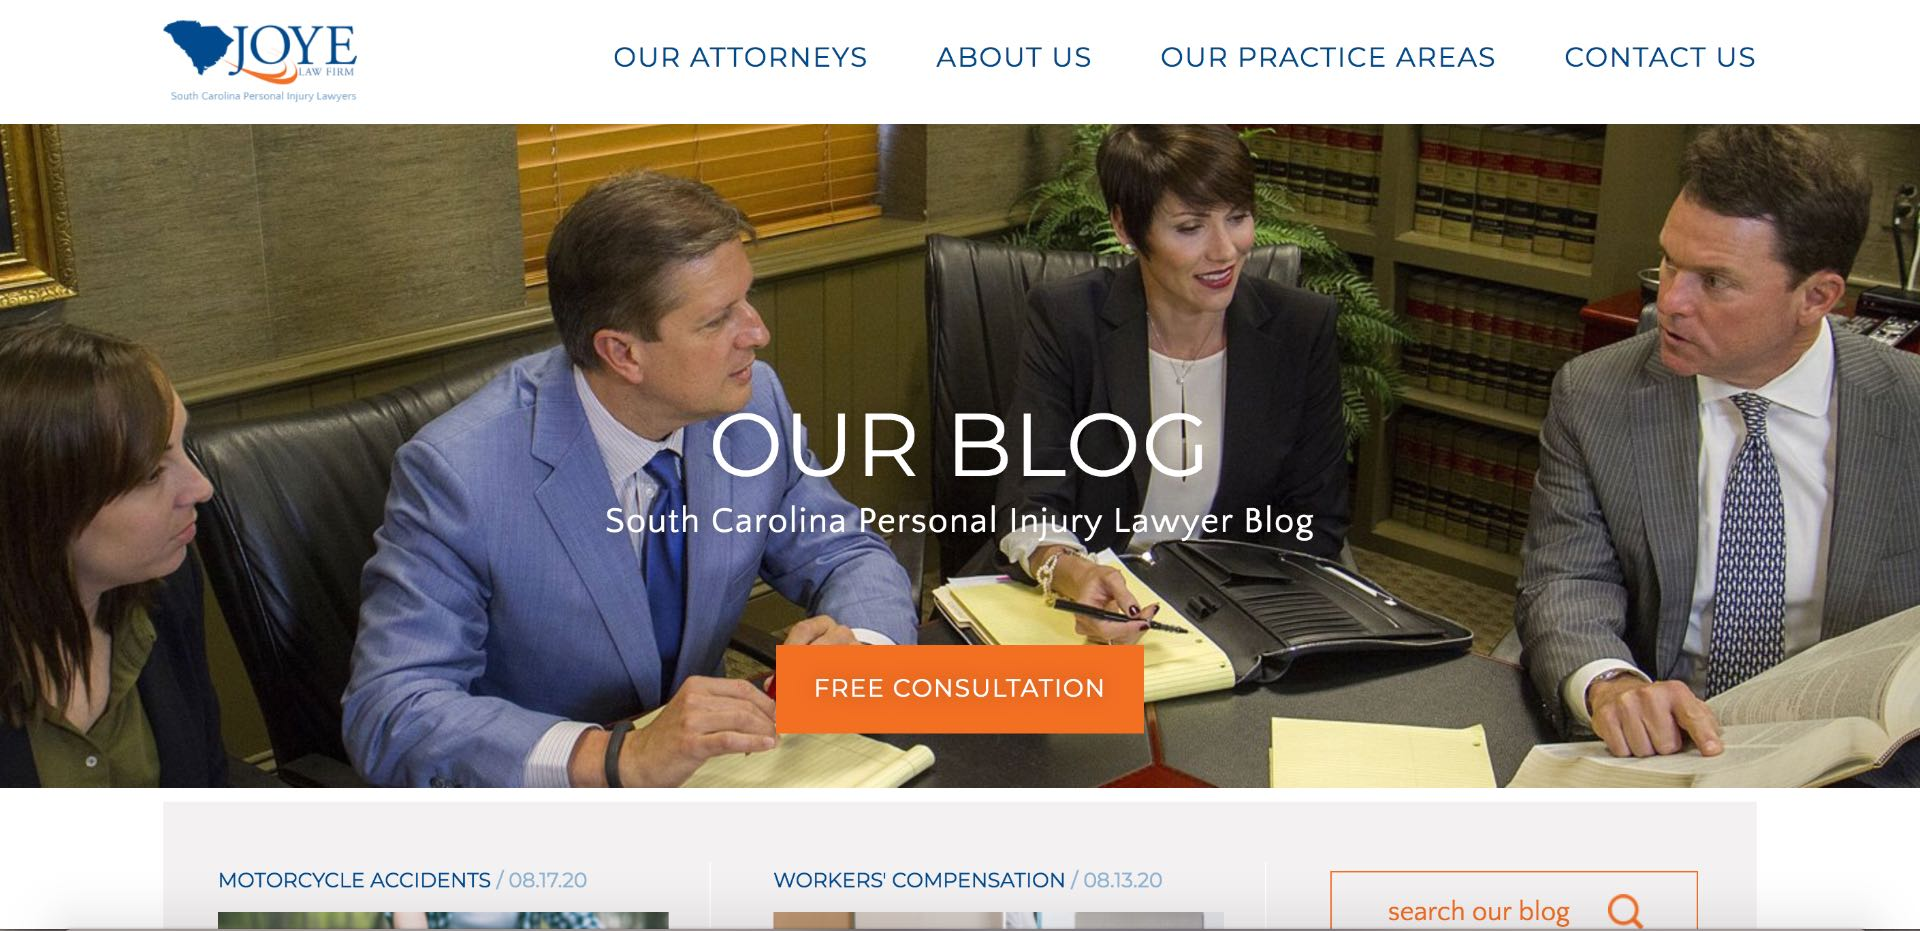 Lawyer blog helps keep content relevant for searchers